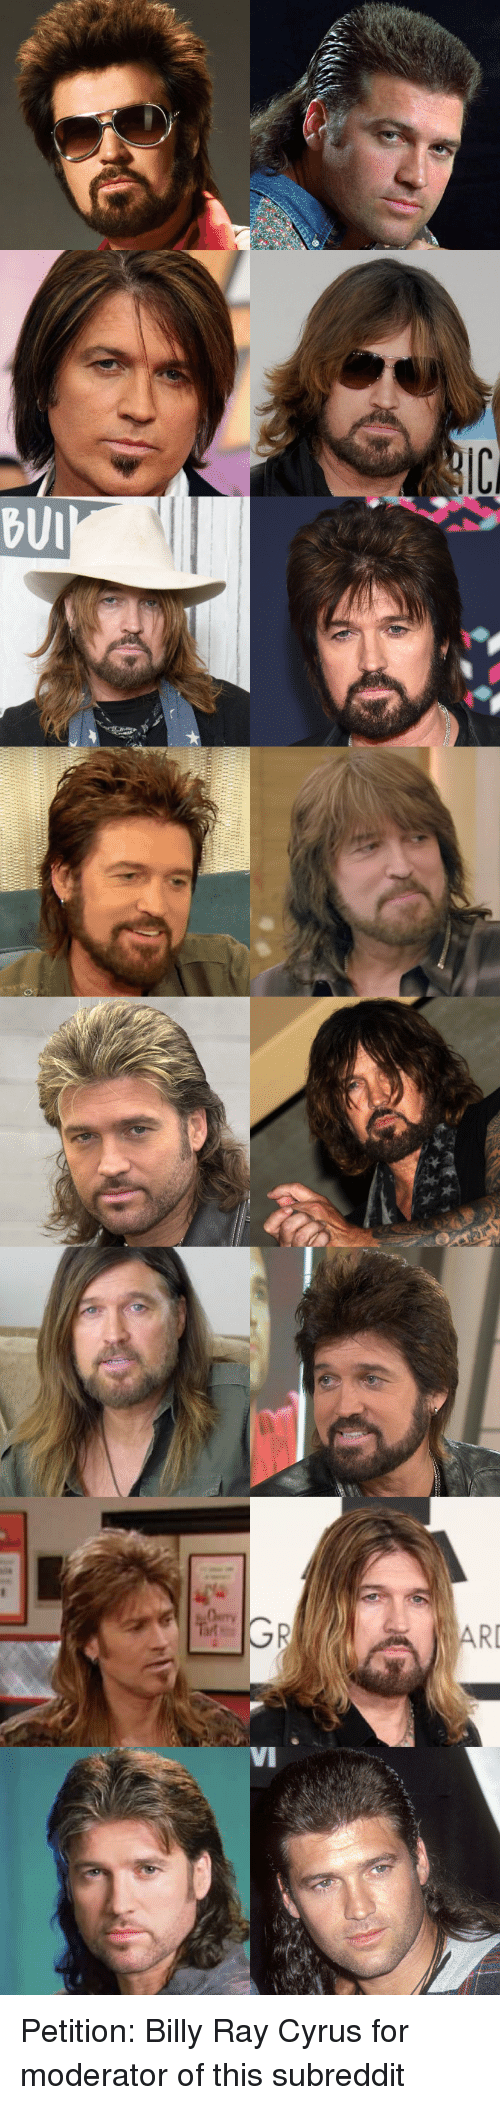 Haircuts, Just Fuck My Shit Up, and Billy Ray: BUI  RI  VI Petition: Billy Ray Cyrus for moderator of this subreddit